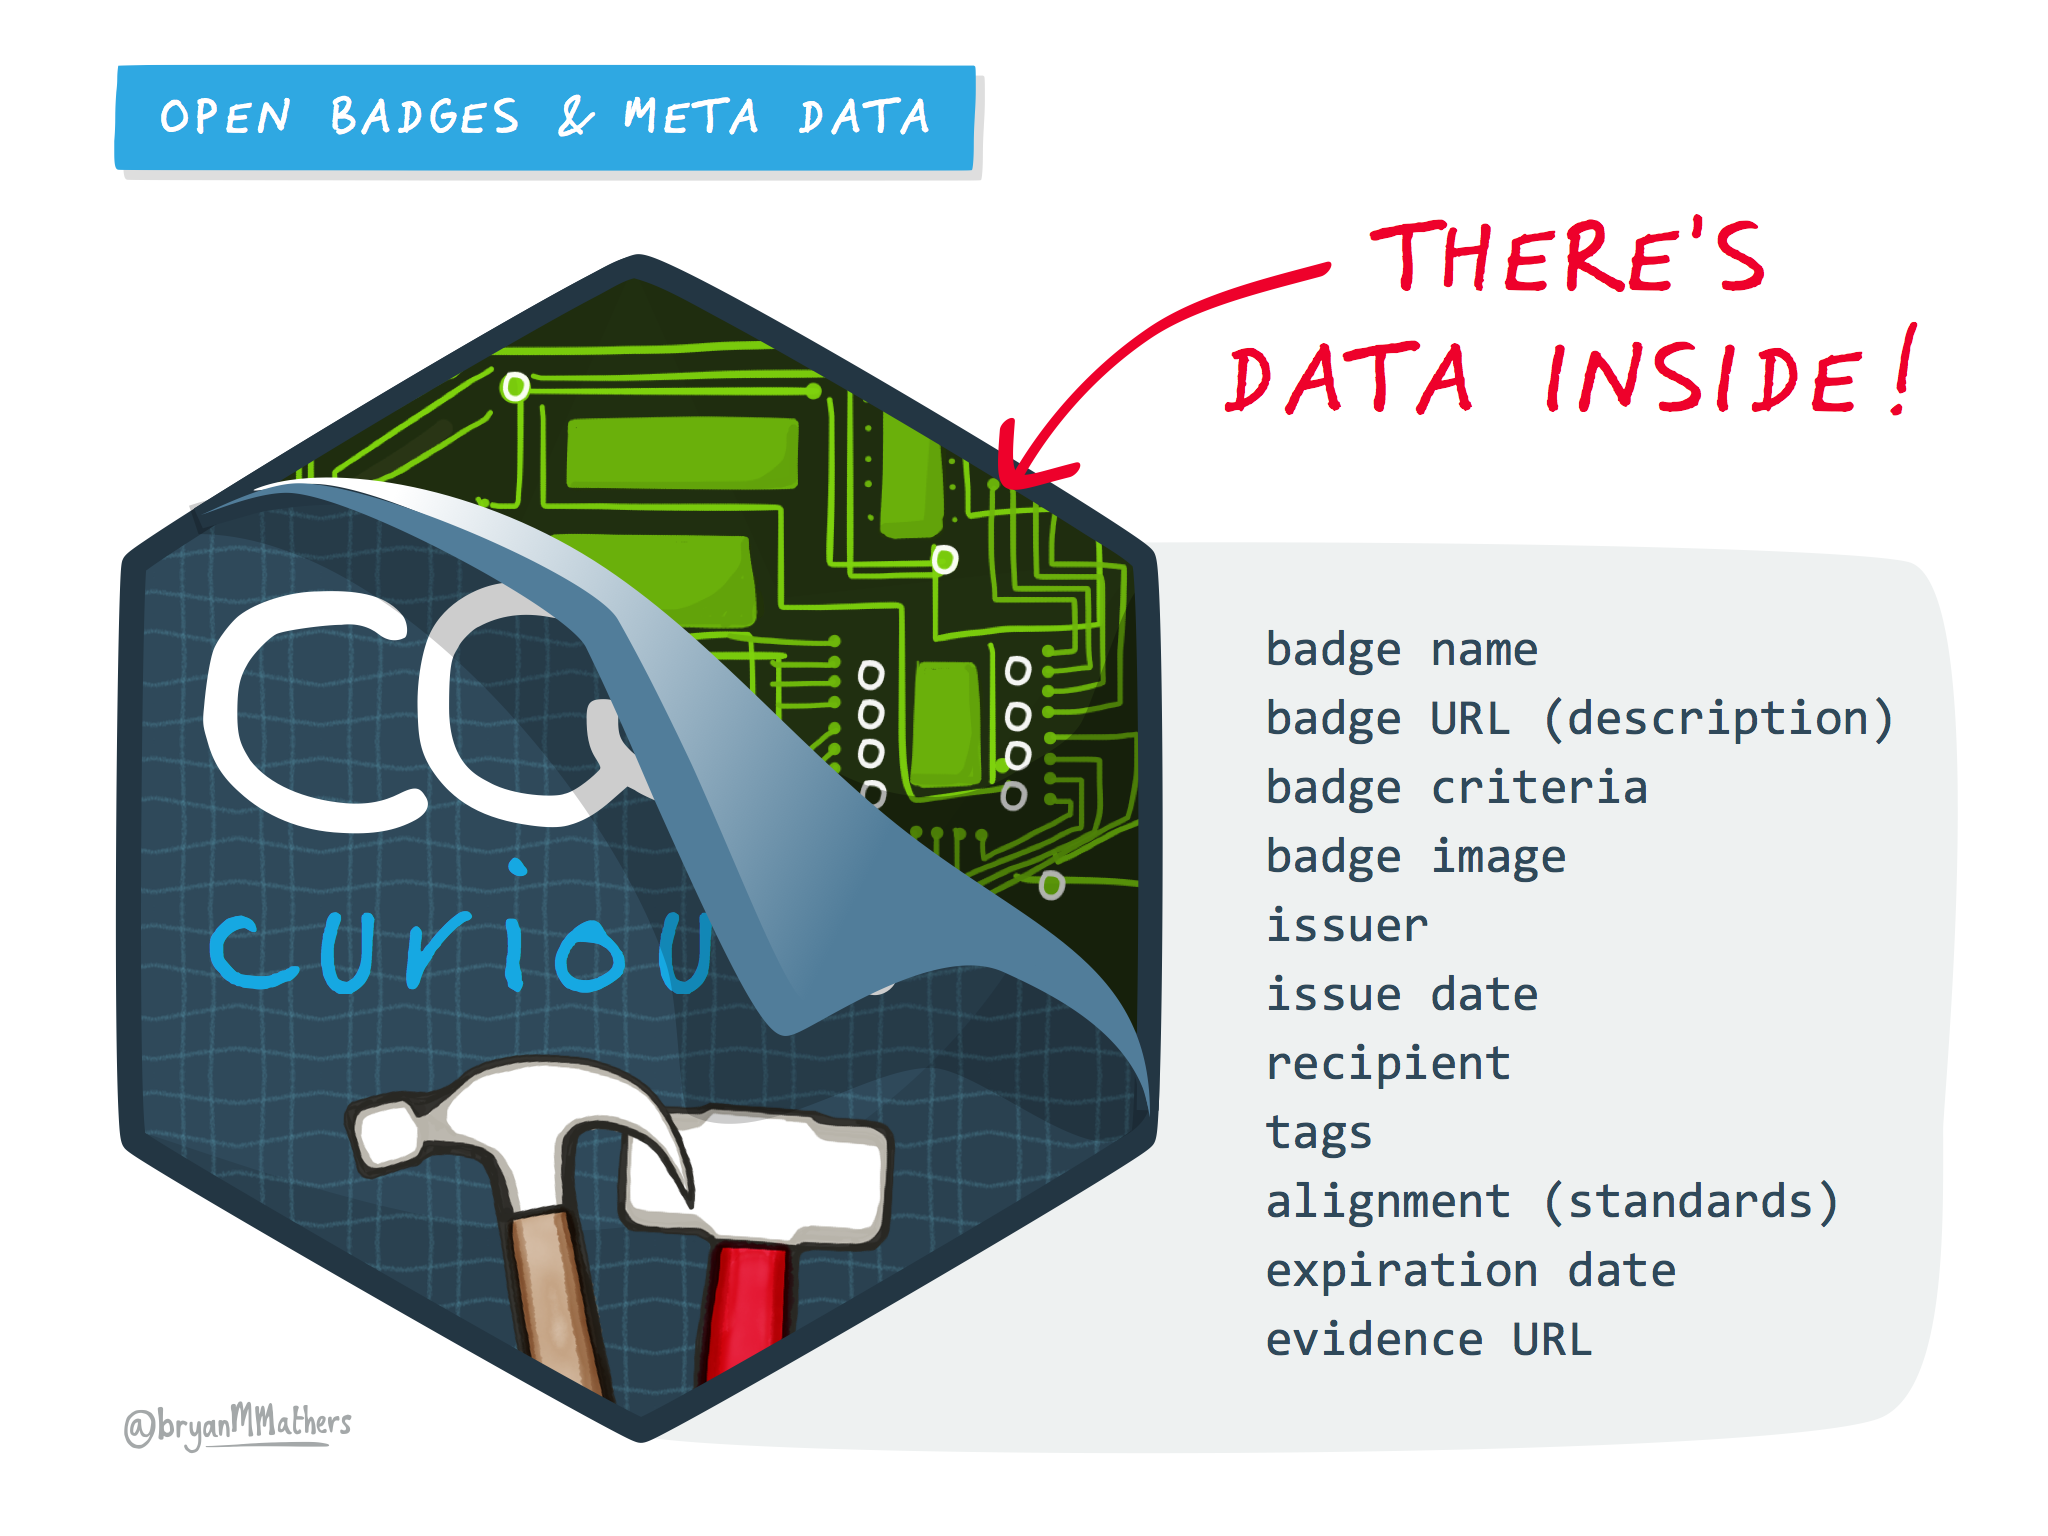 An open badge is digital and has meta-data inside of it such as badge name, URL, criteria, and evidence